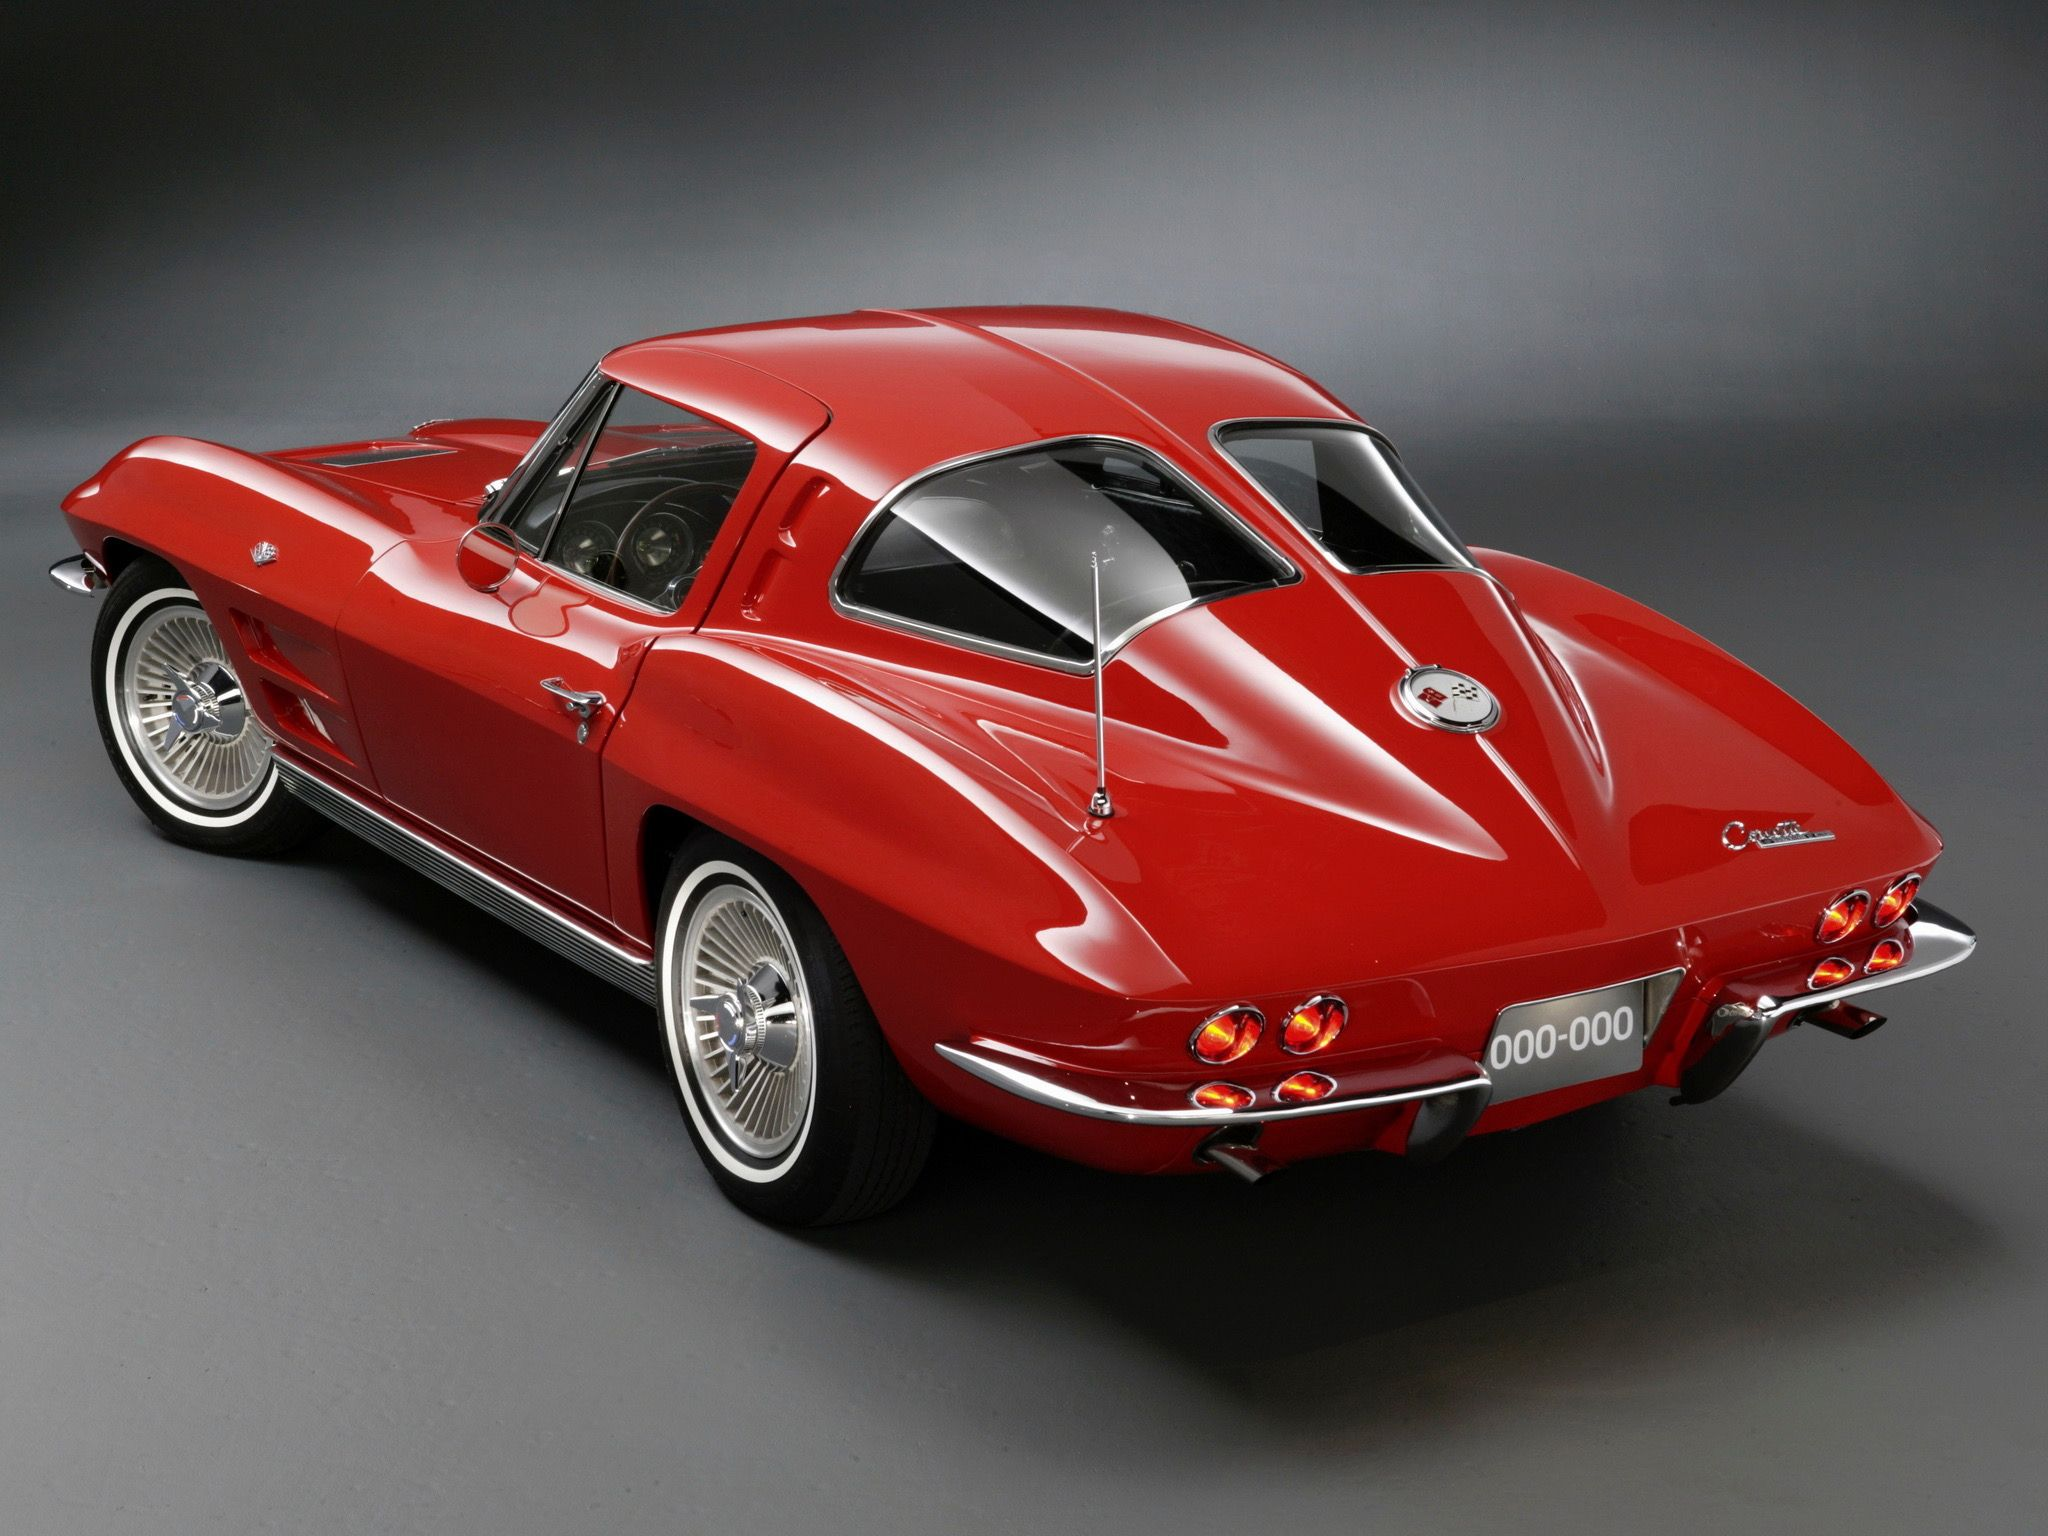 1963 Chevrolet Corvette Stingray Split Window Coupé Chevroletcorvettevintage